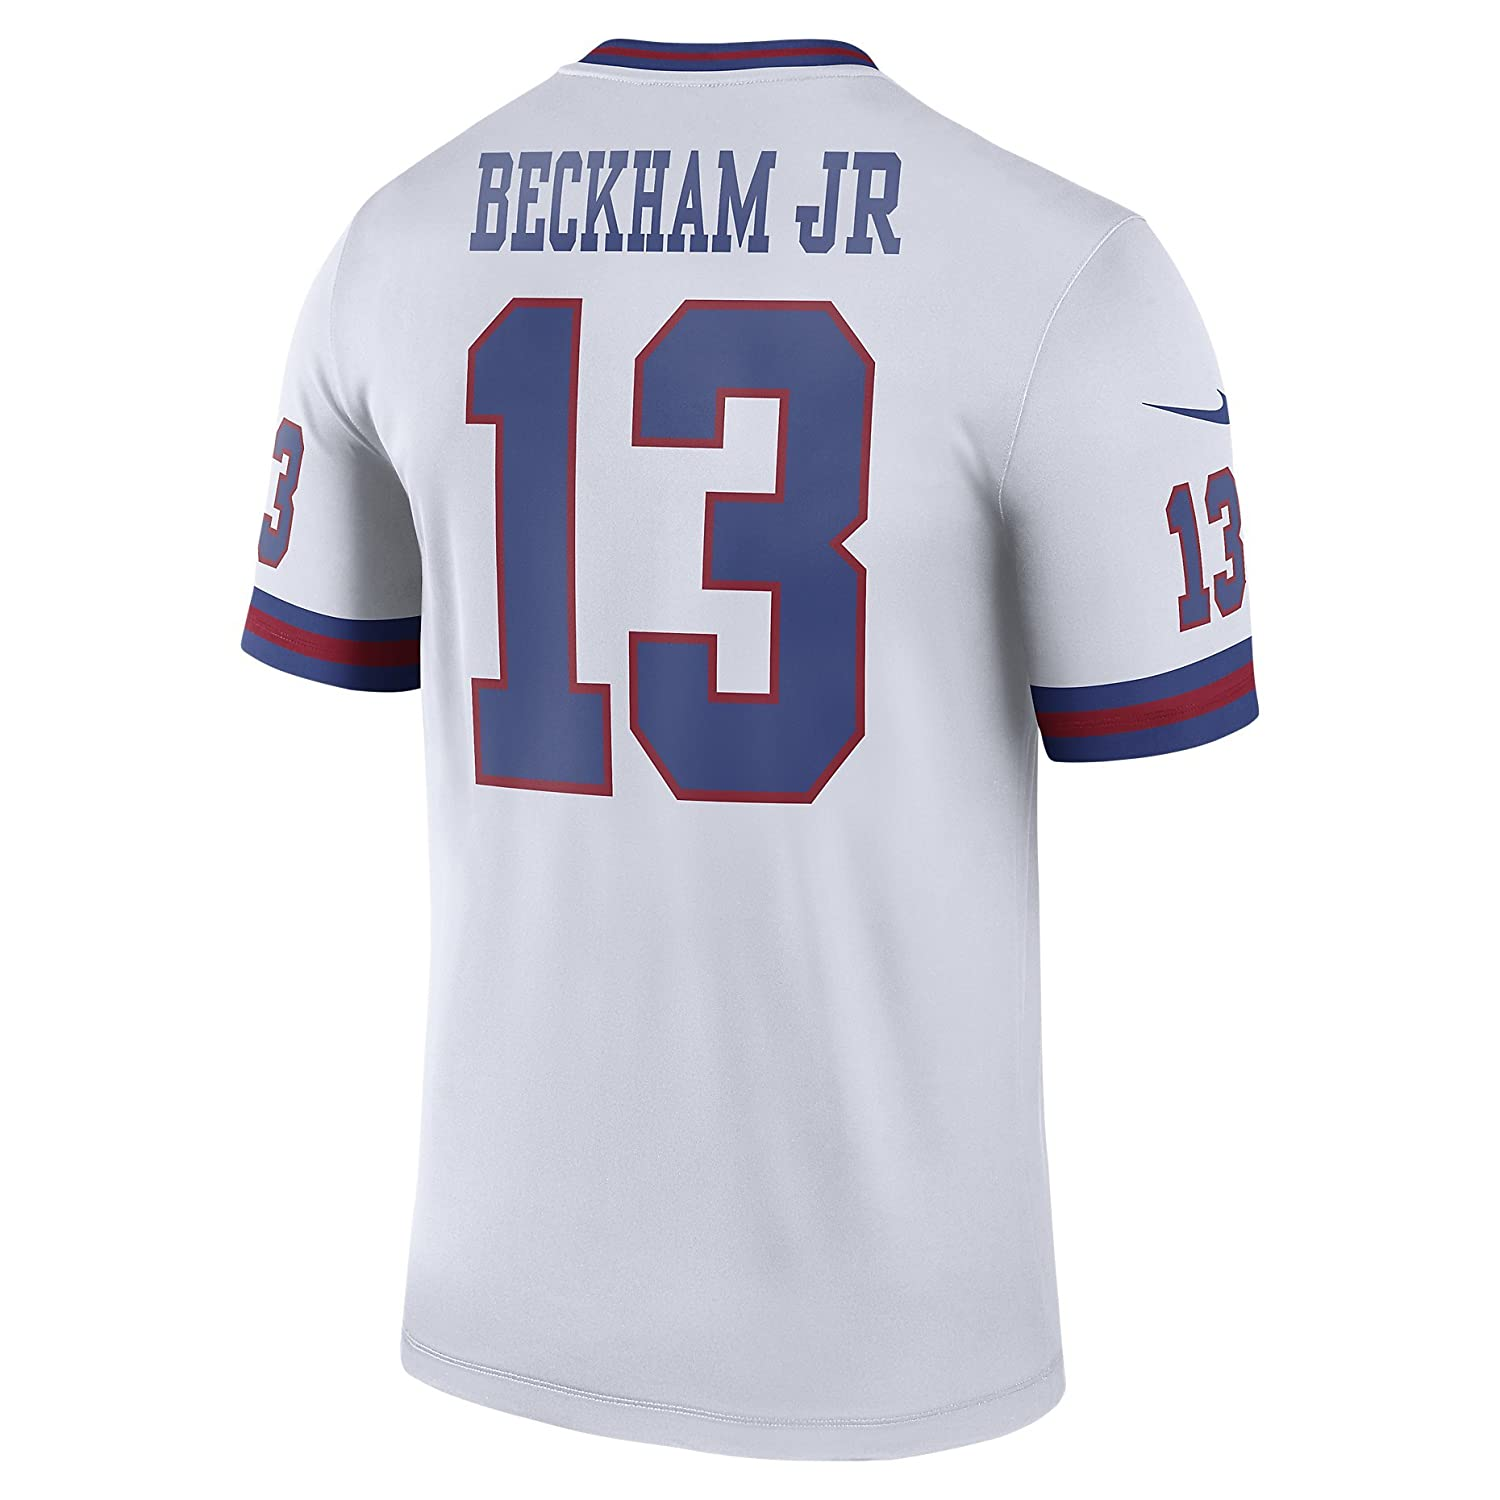 Amazon.com  Nike Odell Beckham Jr. New York Giants Color Rush White Legend  Dri-FIT Jersey - Men s Large  Clothing 2de022973